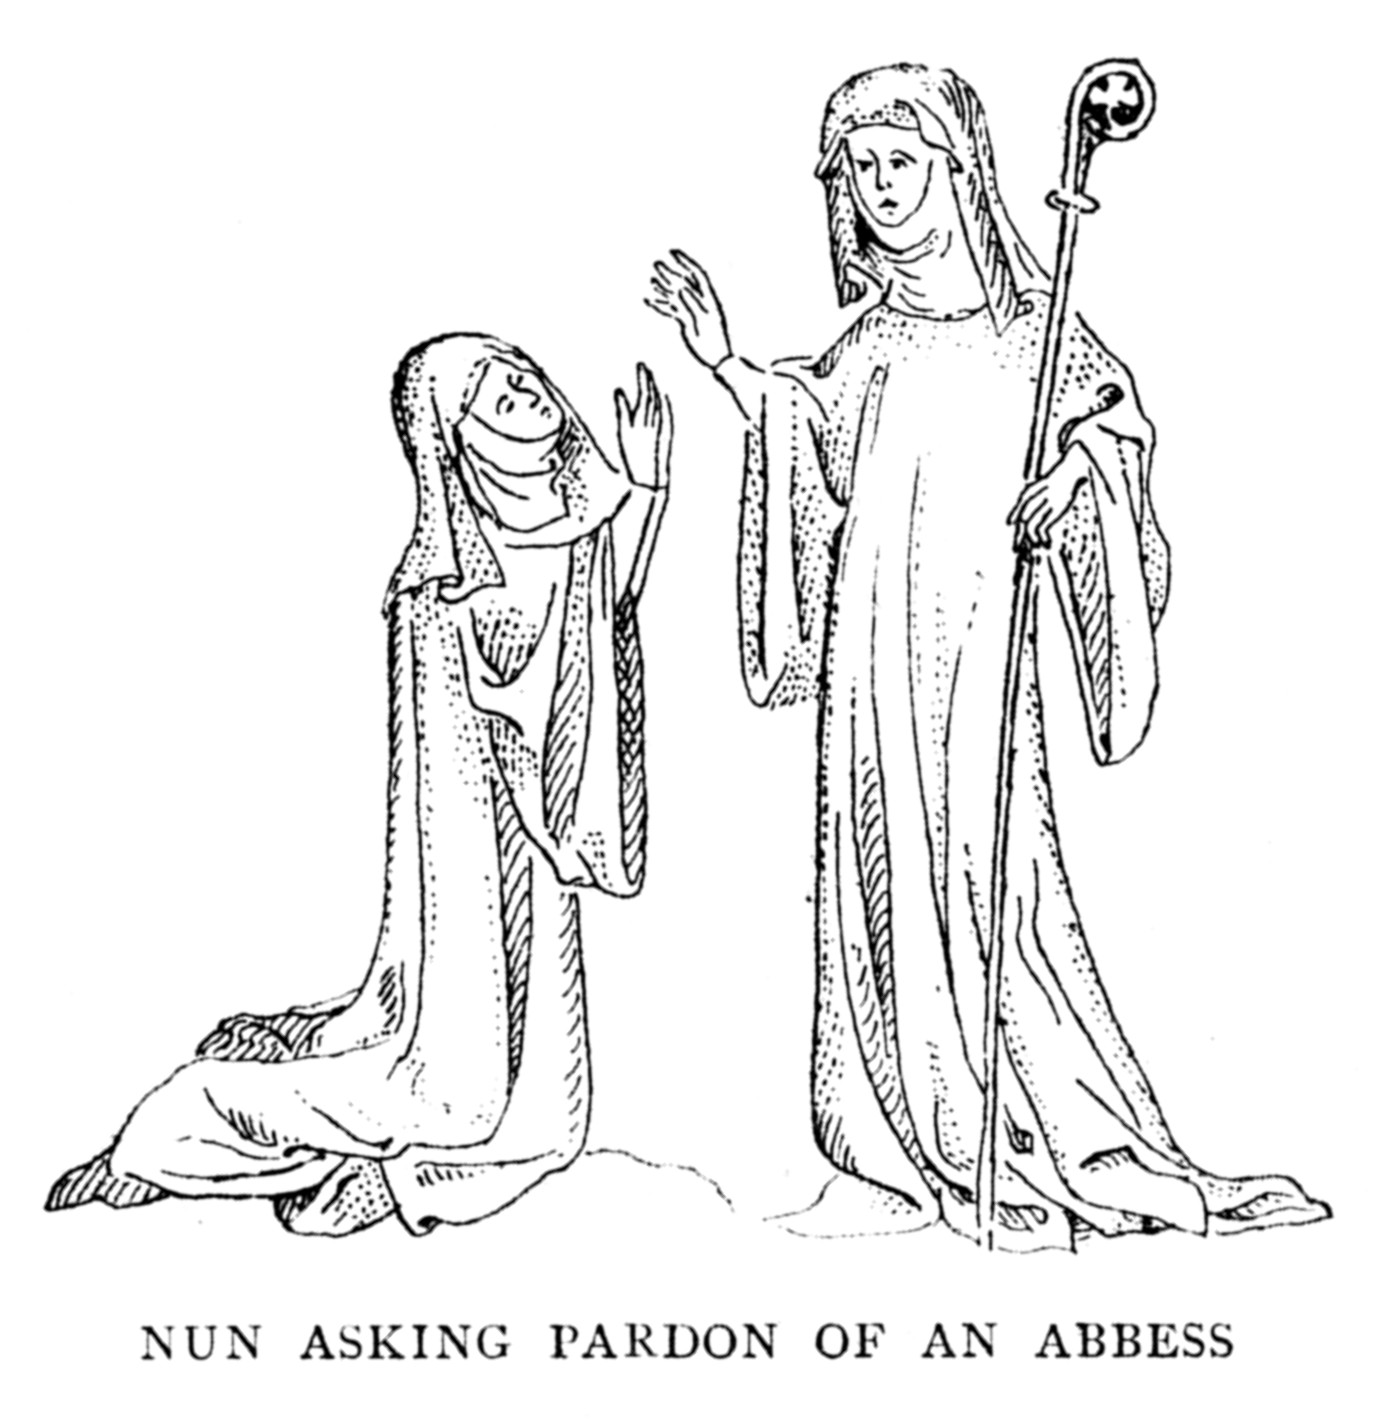 What did nuns wear in the middle ages